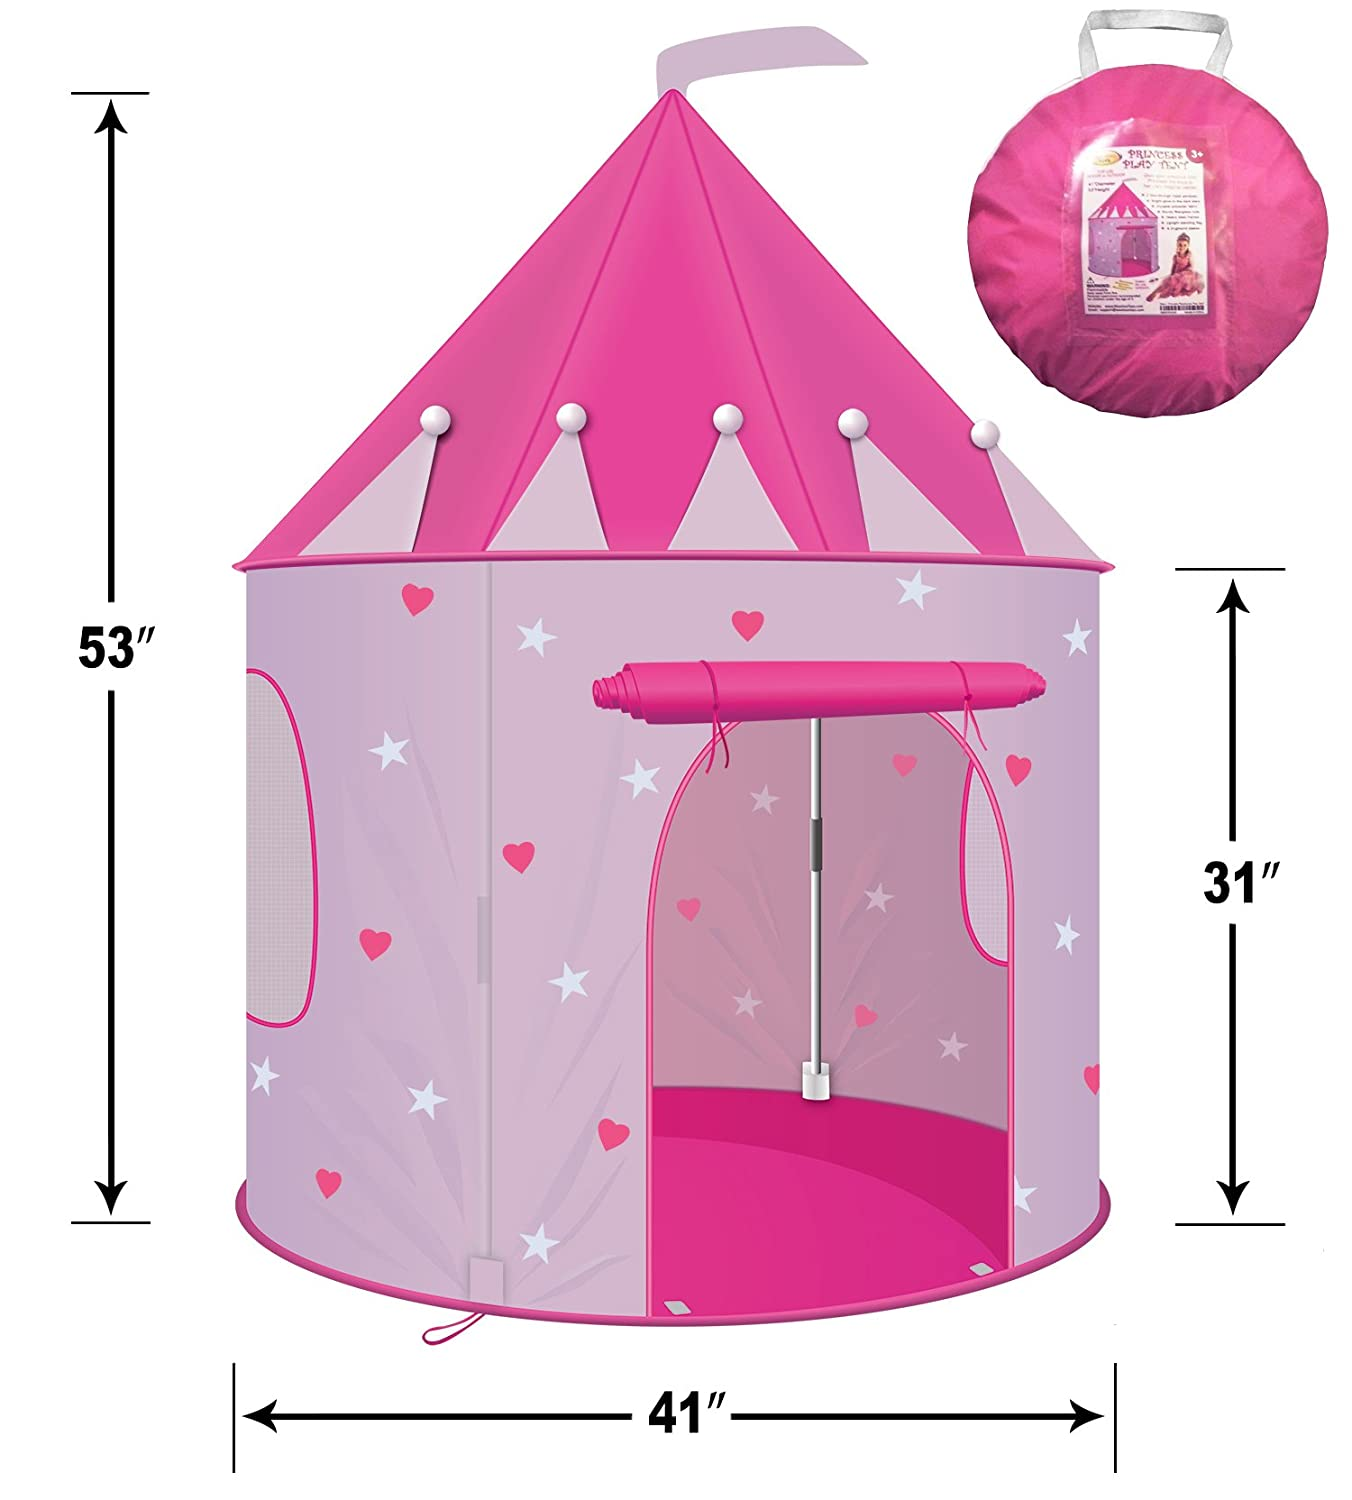 CPSIA Compliant Children Play Tent - Girl's Pink Princess Castle Play Tent Playhouse for Kids- Lightweight and Portable for Indoor or Outdoor Use With Stakes - Glow-in-the-Dark Stars - by WooHoo Toys 515pcs arendelle castle celebration princess anna elsa building block toys lepin 01018 diy gift for children compatible legoe